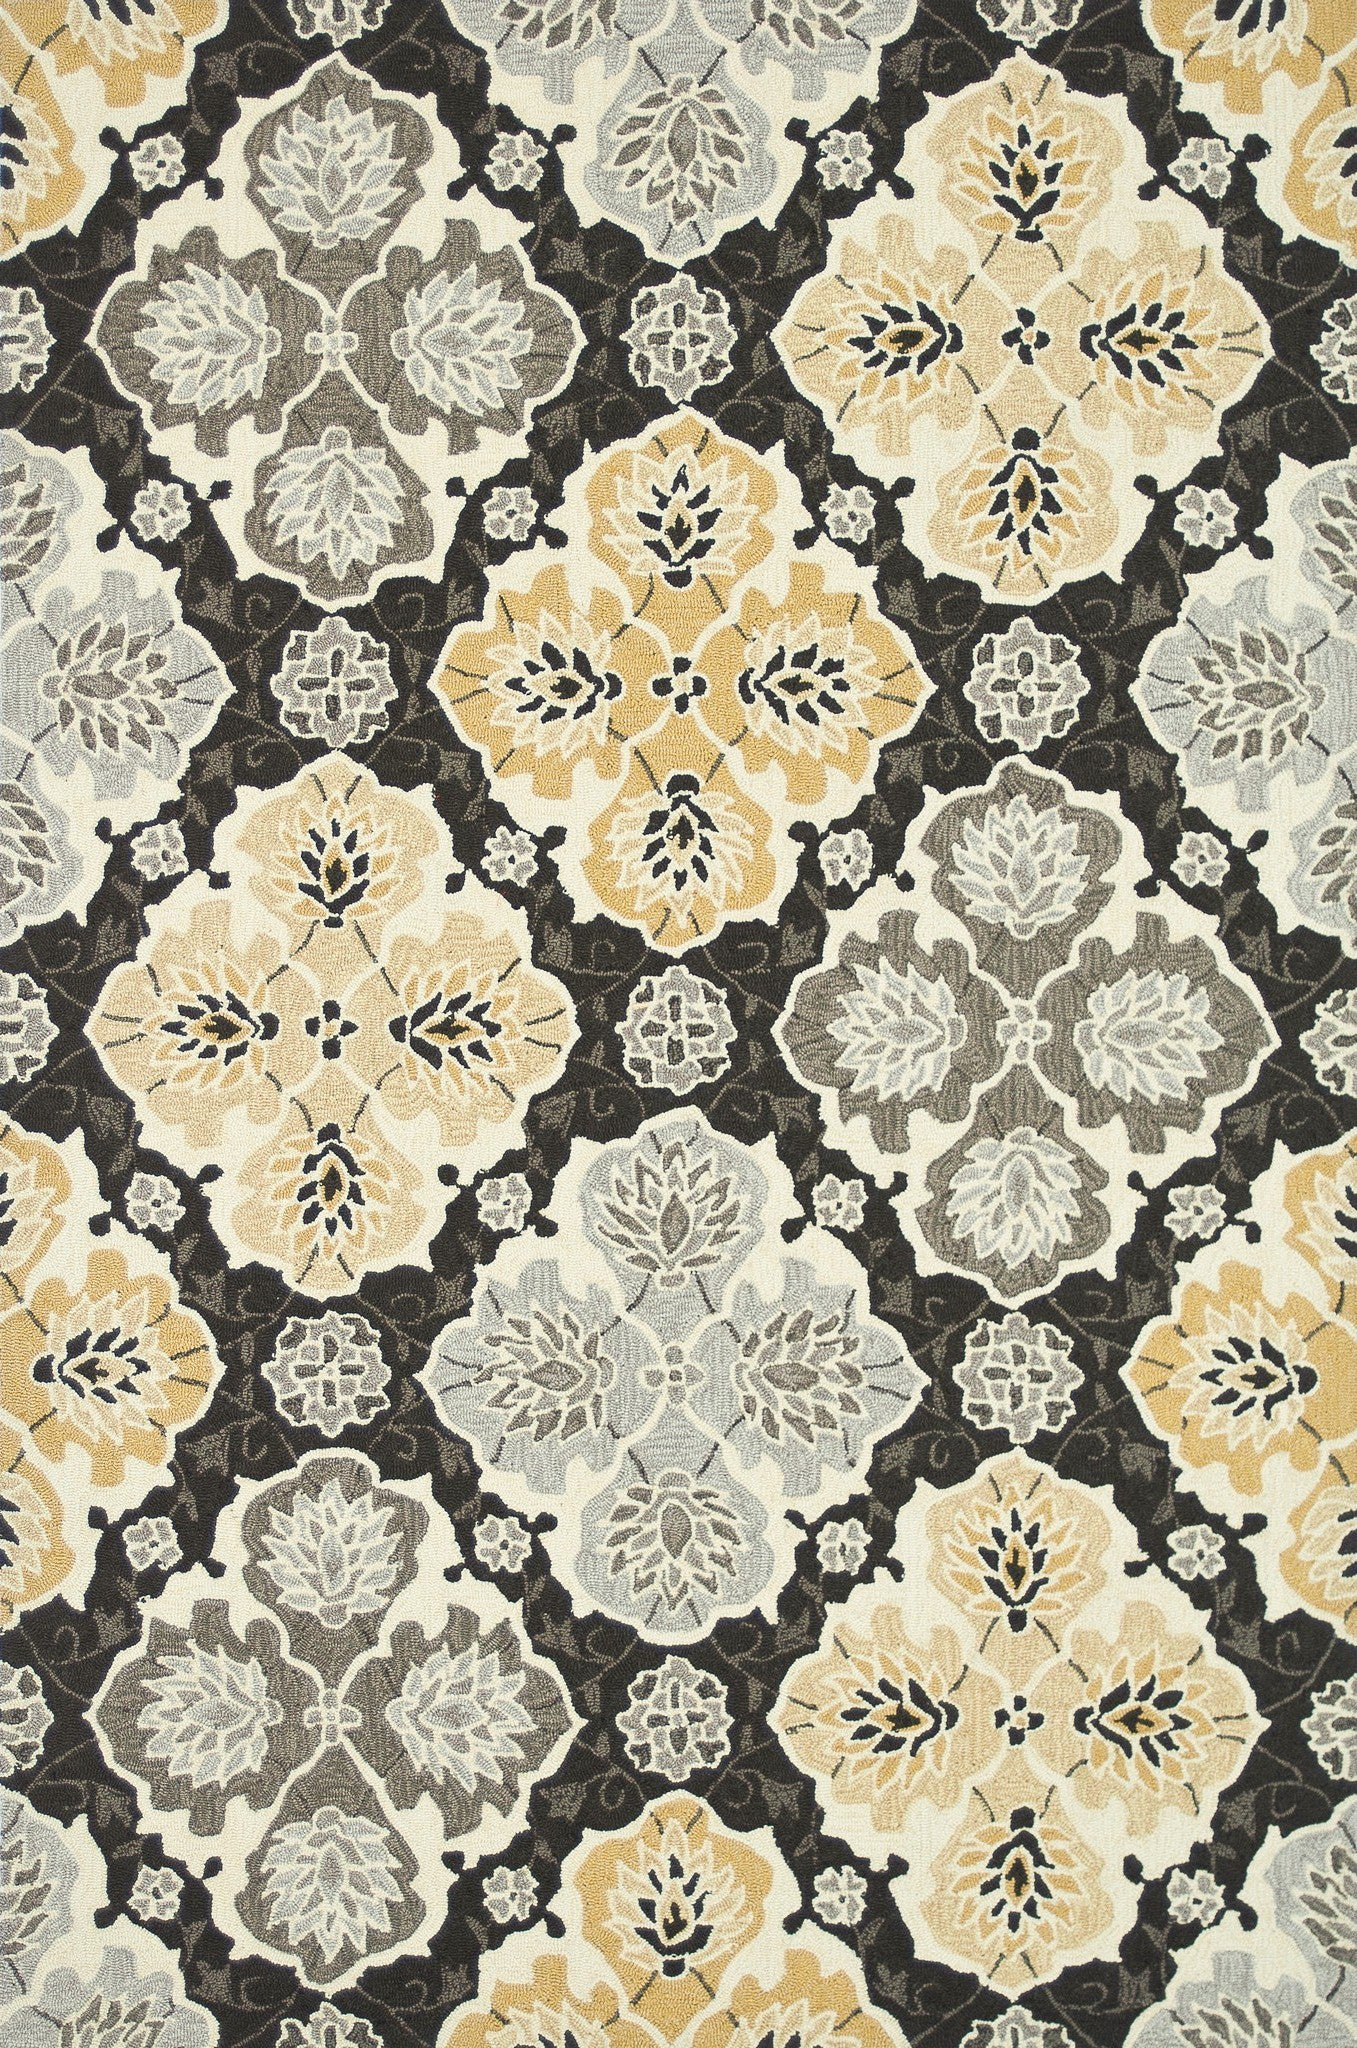 Loloi Francesca FC-25 Charcoal / Multi Area Rug main image